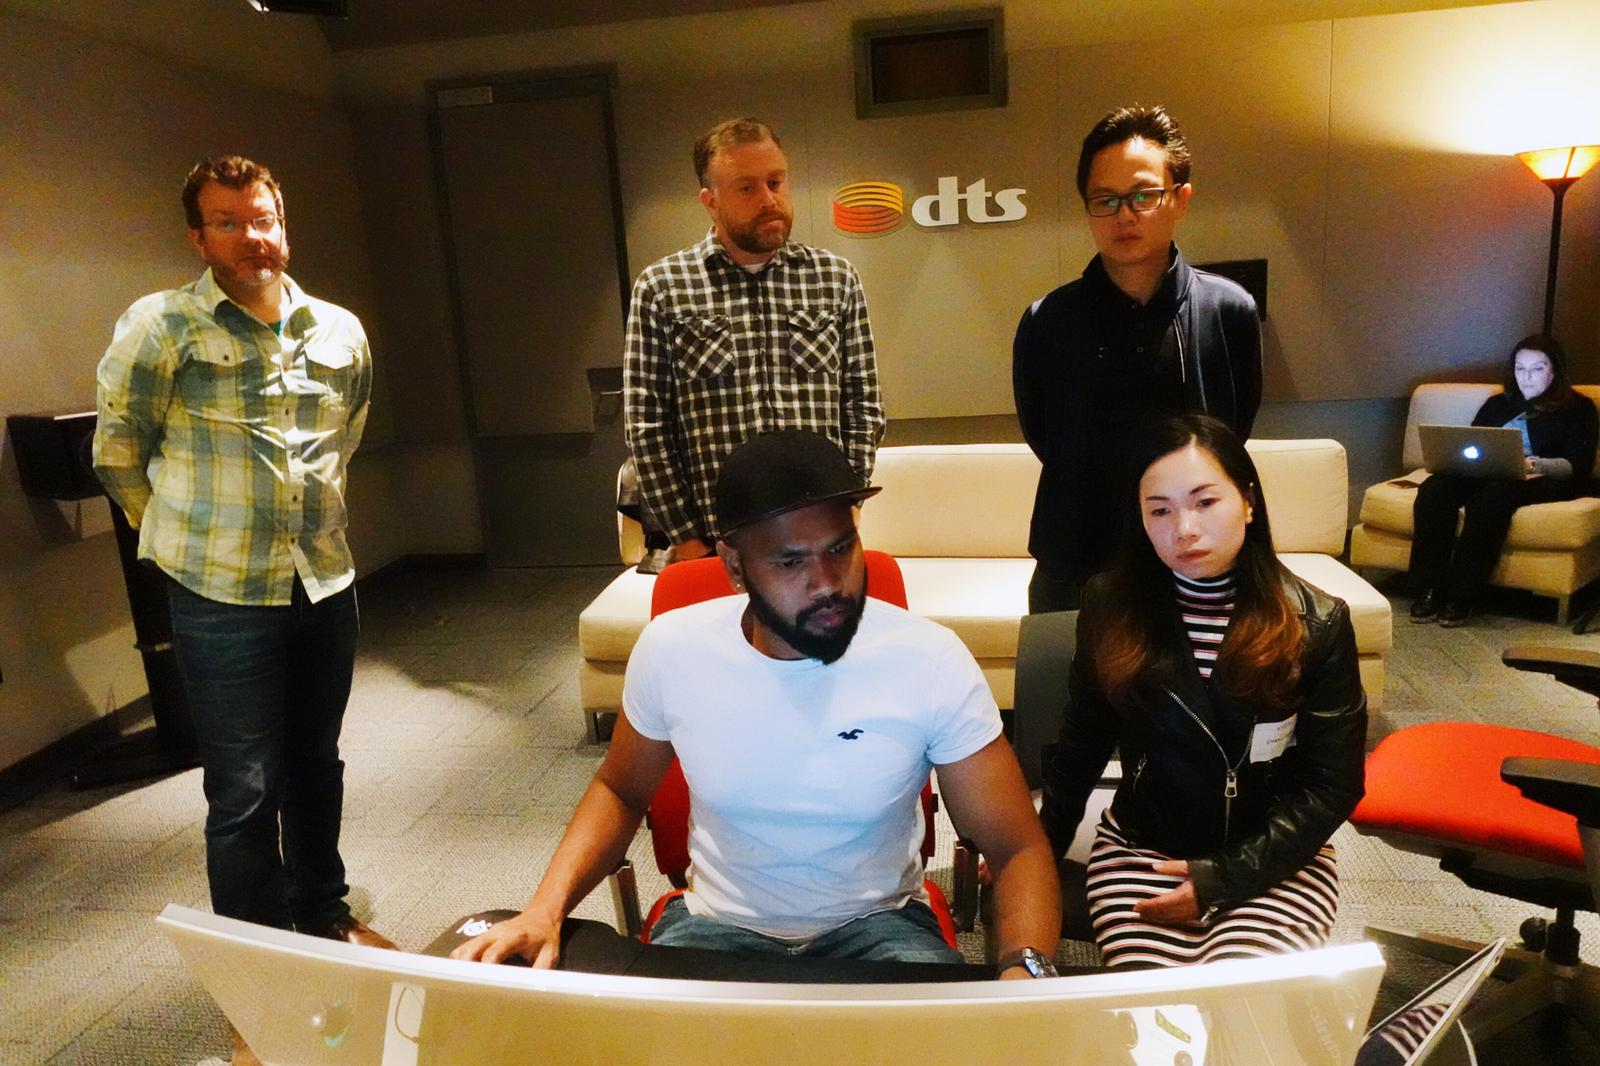 Sound Designer Naveen and Li Shen carefully applied what they learned in the classroom of DTS office.